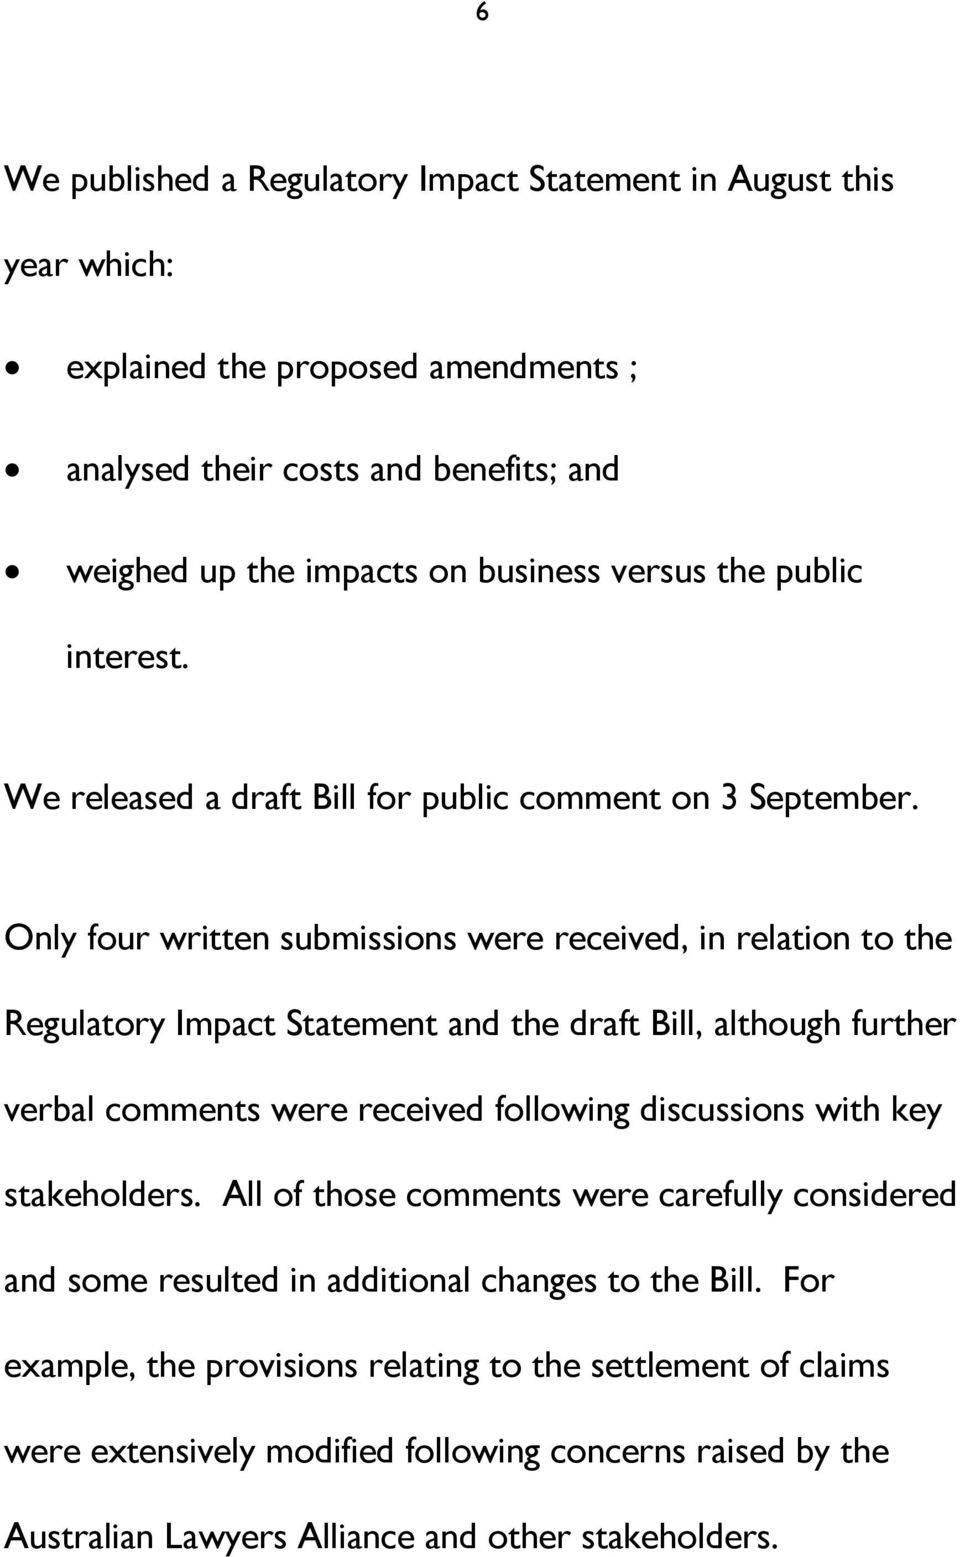 Only four written submissions were received, in relation to the Regulatory Impact Statement and the draft Bill, although further verbal comments were received following discussions with